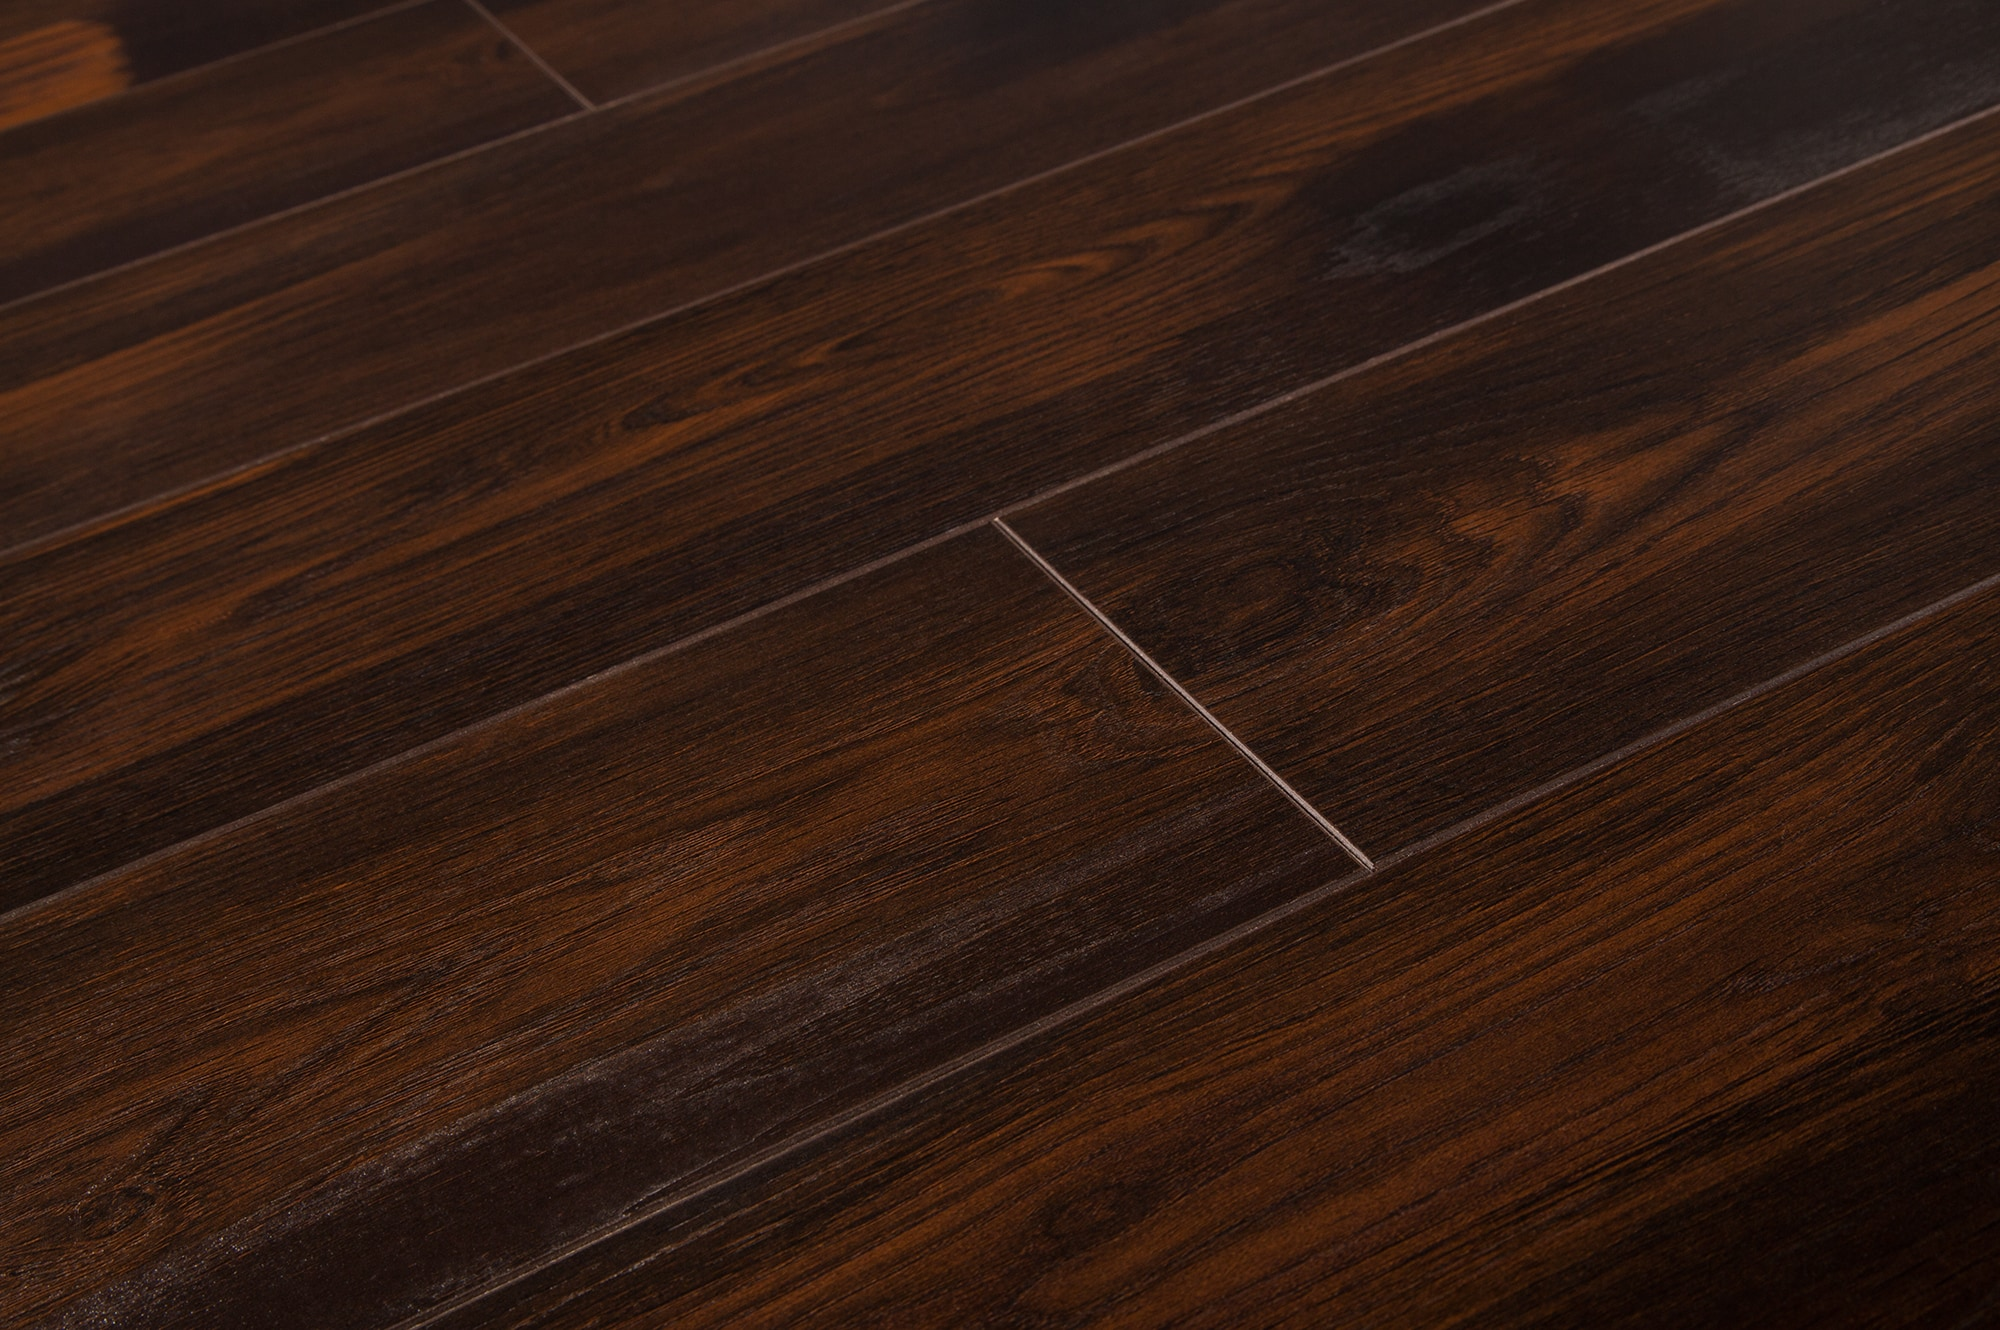 ebony wood floors - photo #34